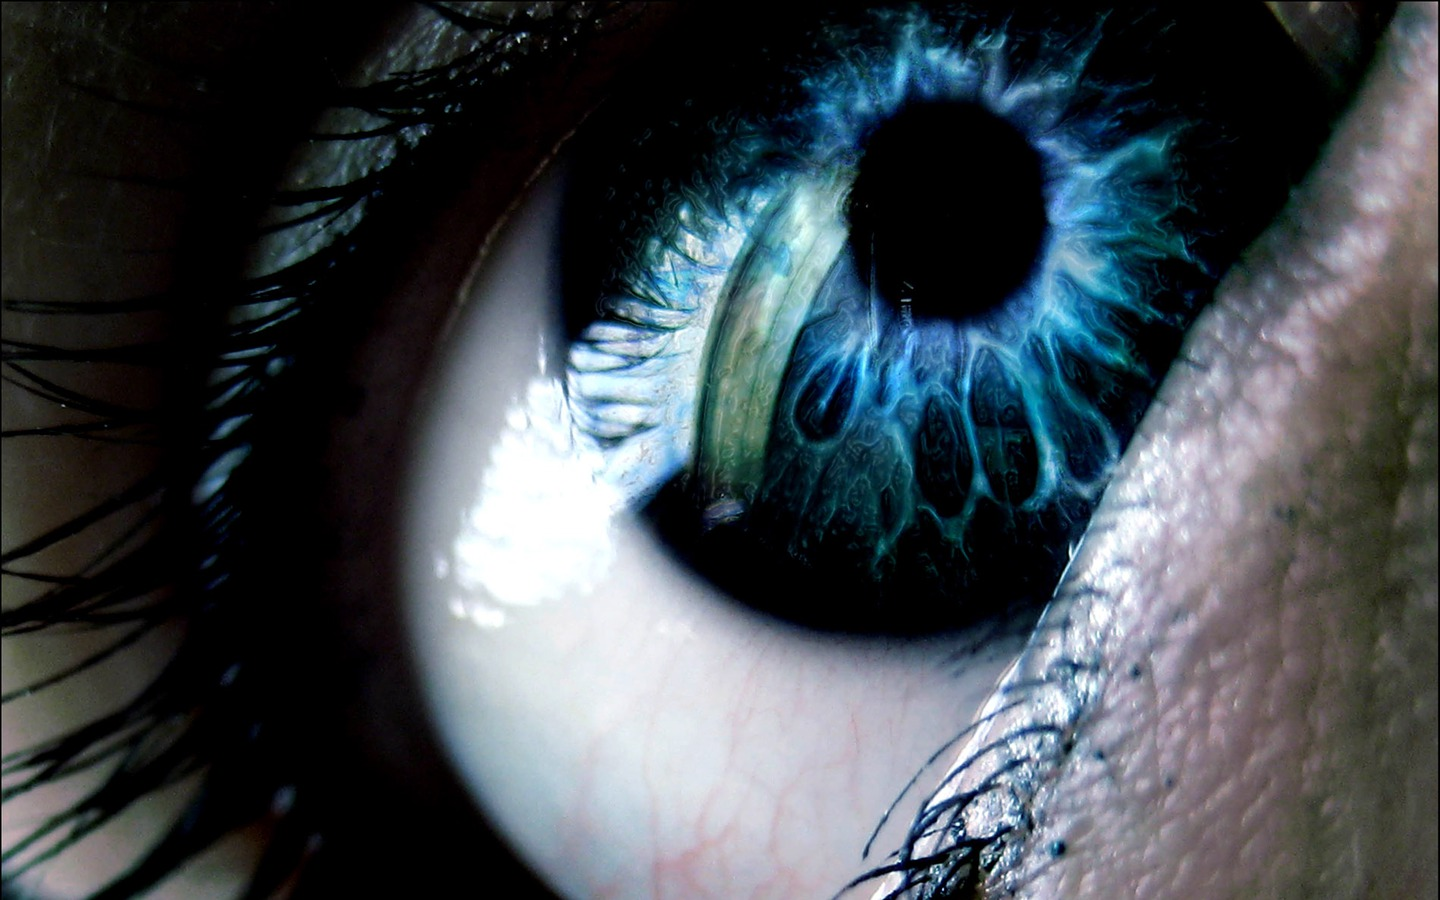 Black light reactive contact lenses | Zombie Apocalypse ...